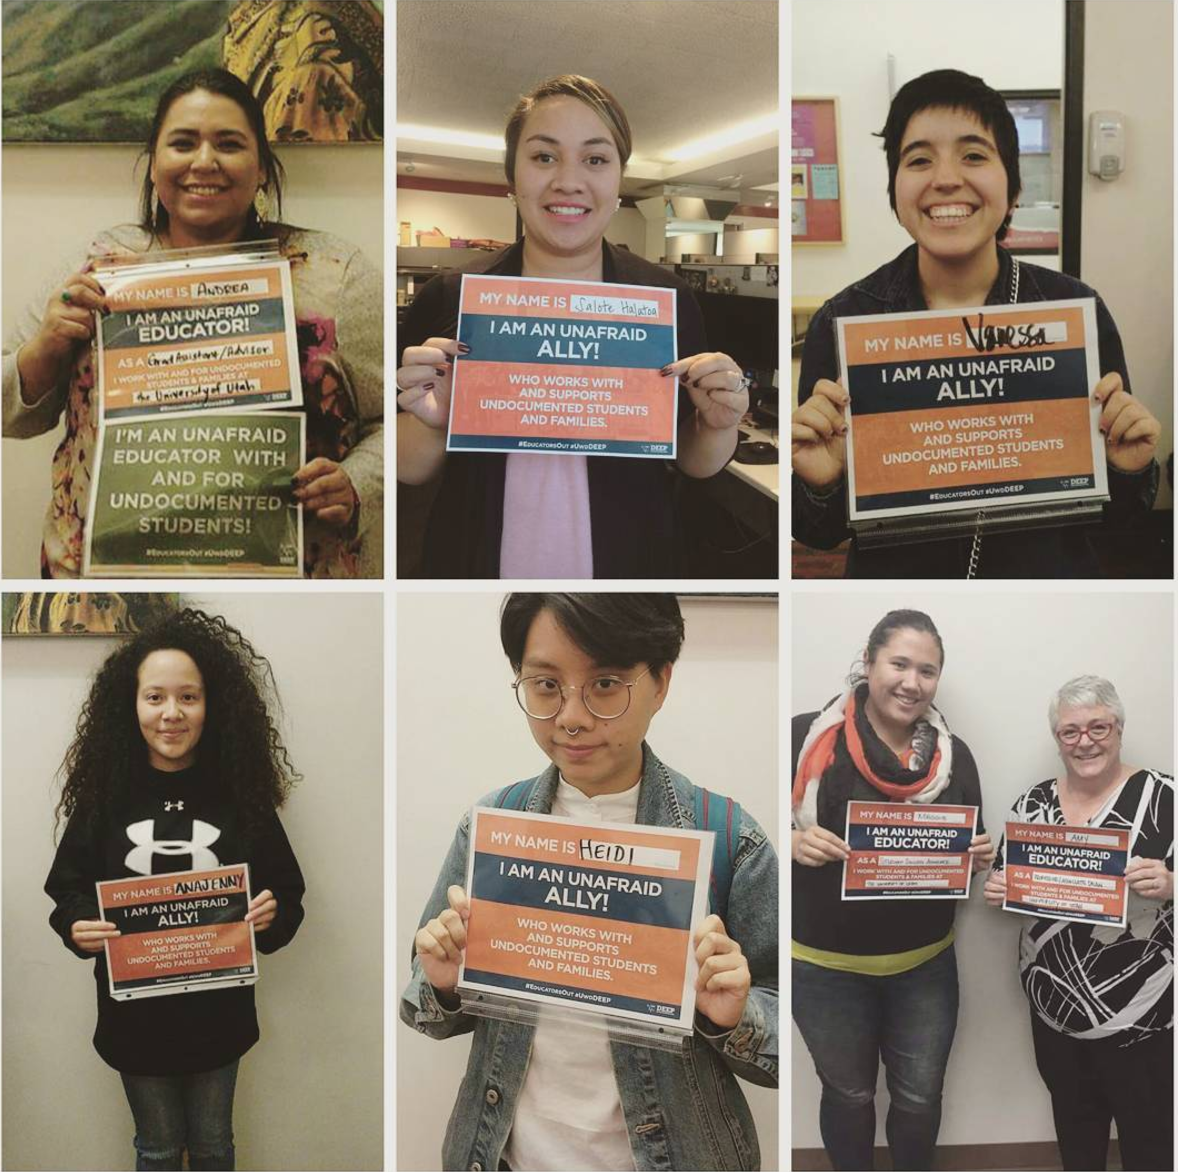 collage of people holding undocumented ally signs